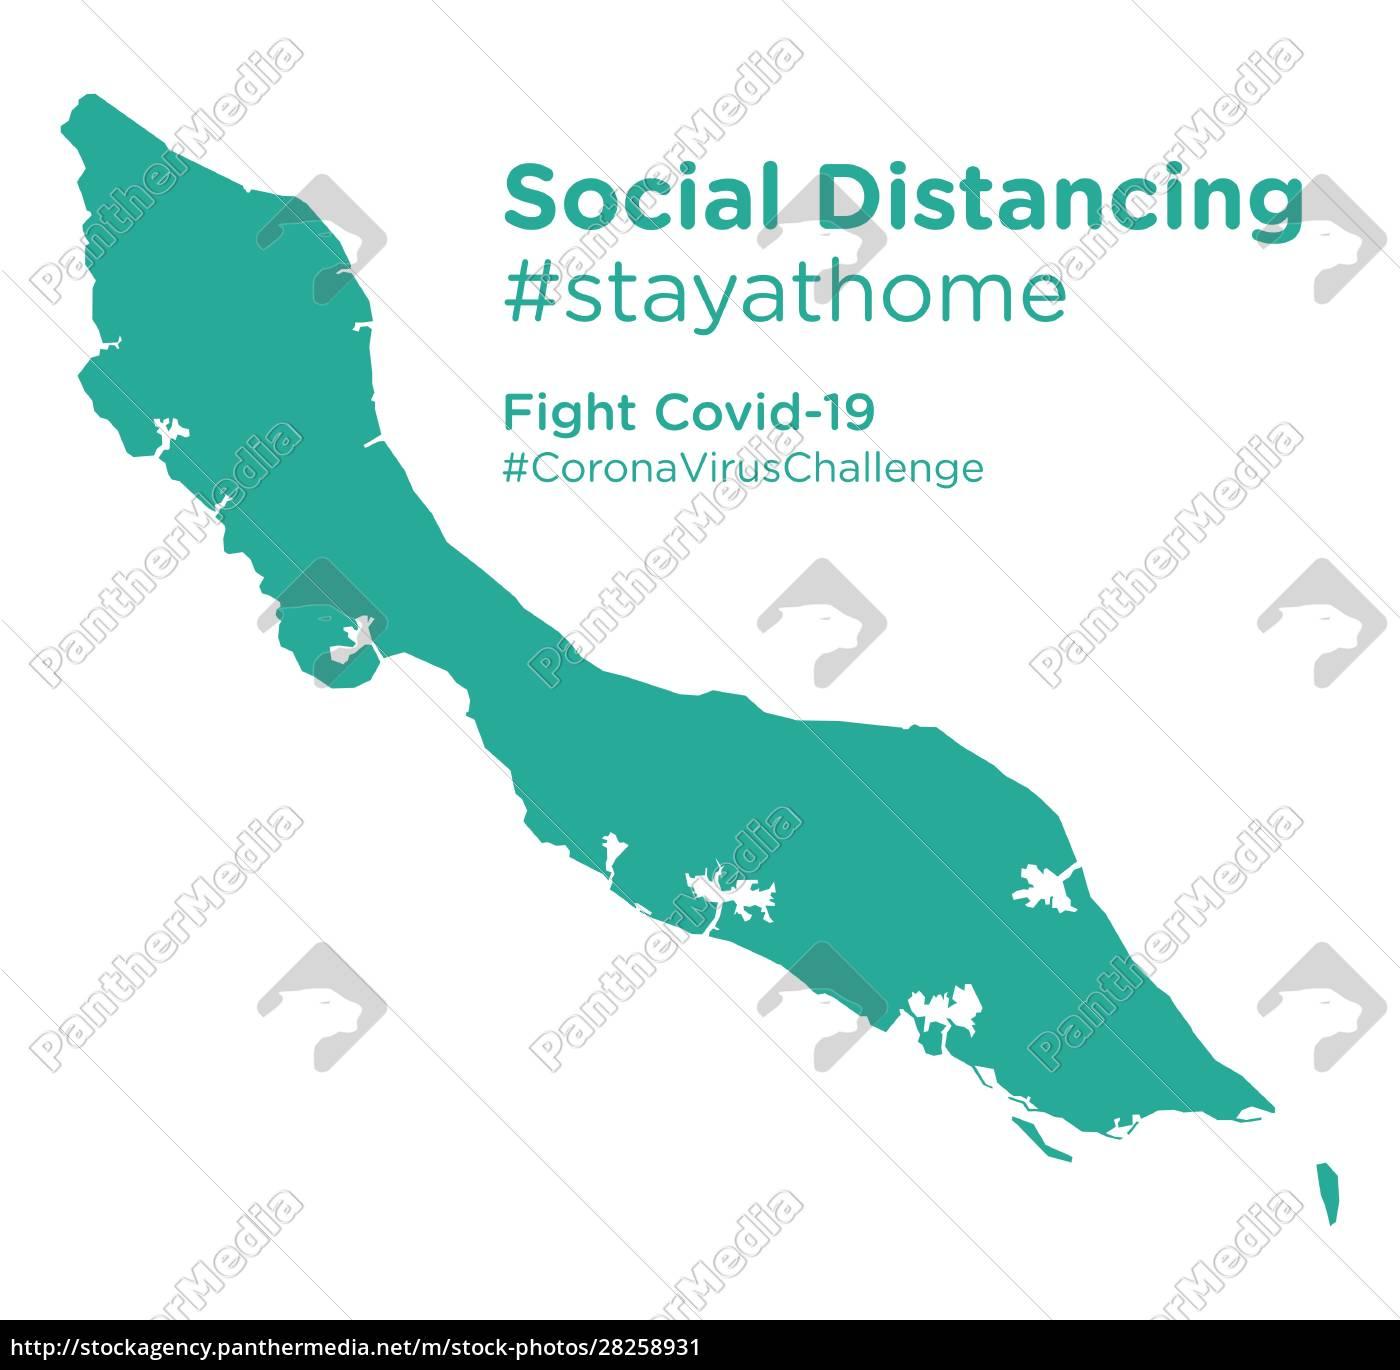 curacao, map, with, social, distancing, #stayathome - 28258931